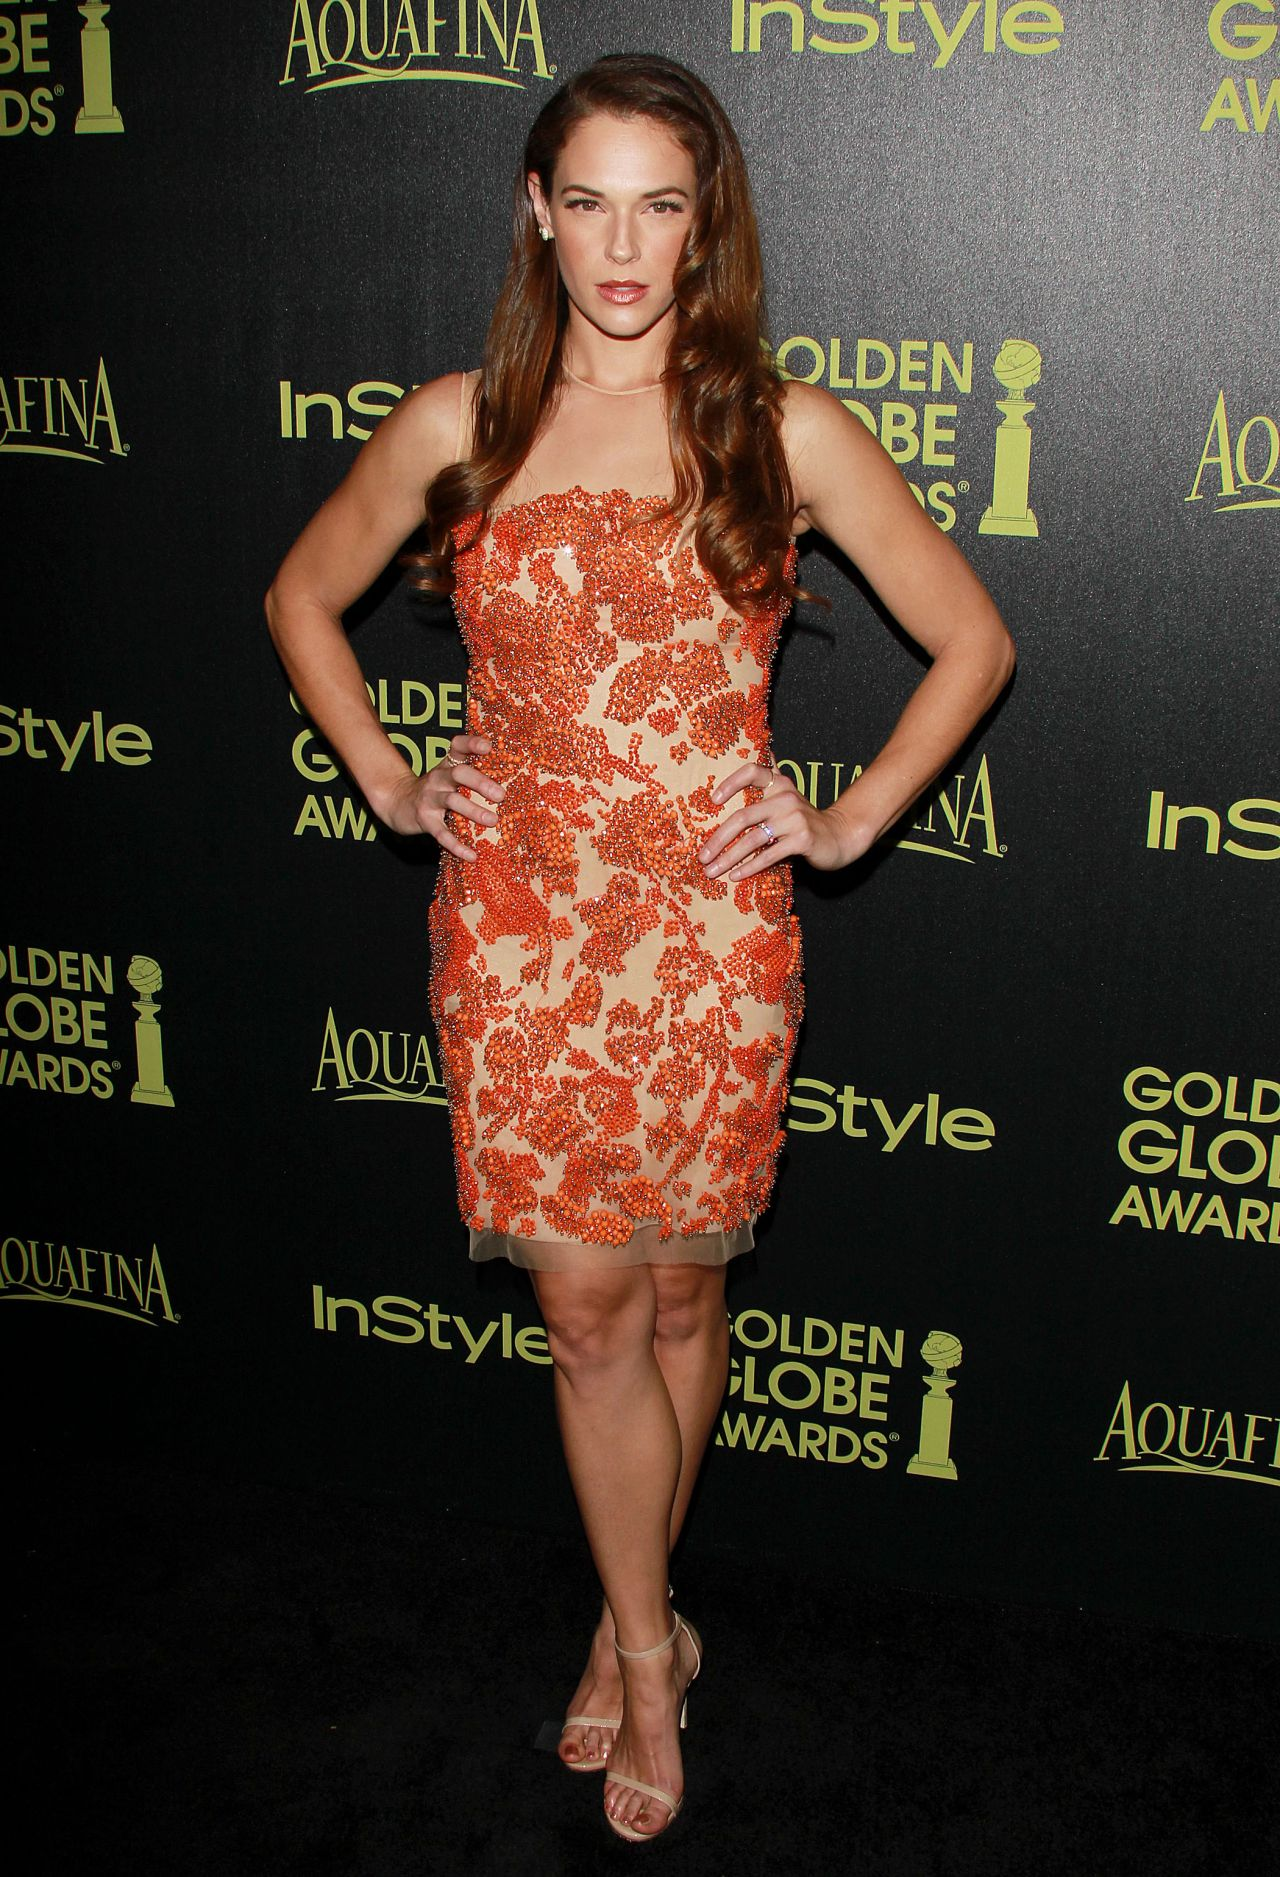 http://celebmafia.com/wp-content/uploads/2014/11/amanda-righetti-hfpa-and-instyle-s-celebration-of-the-2015-golden-globe-award-season-in-west-hollywood_1.jpg